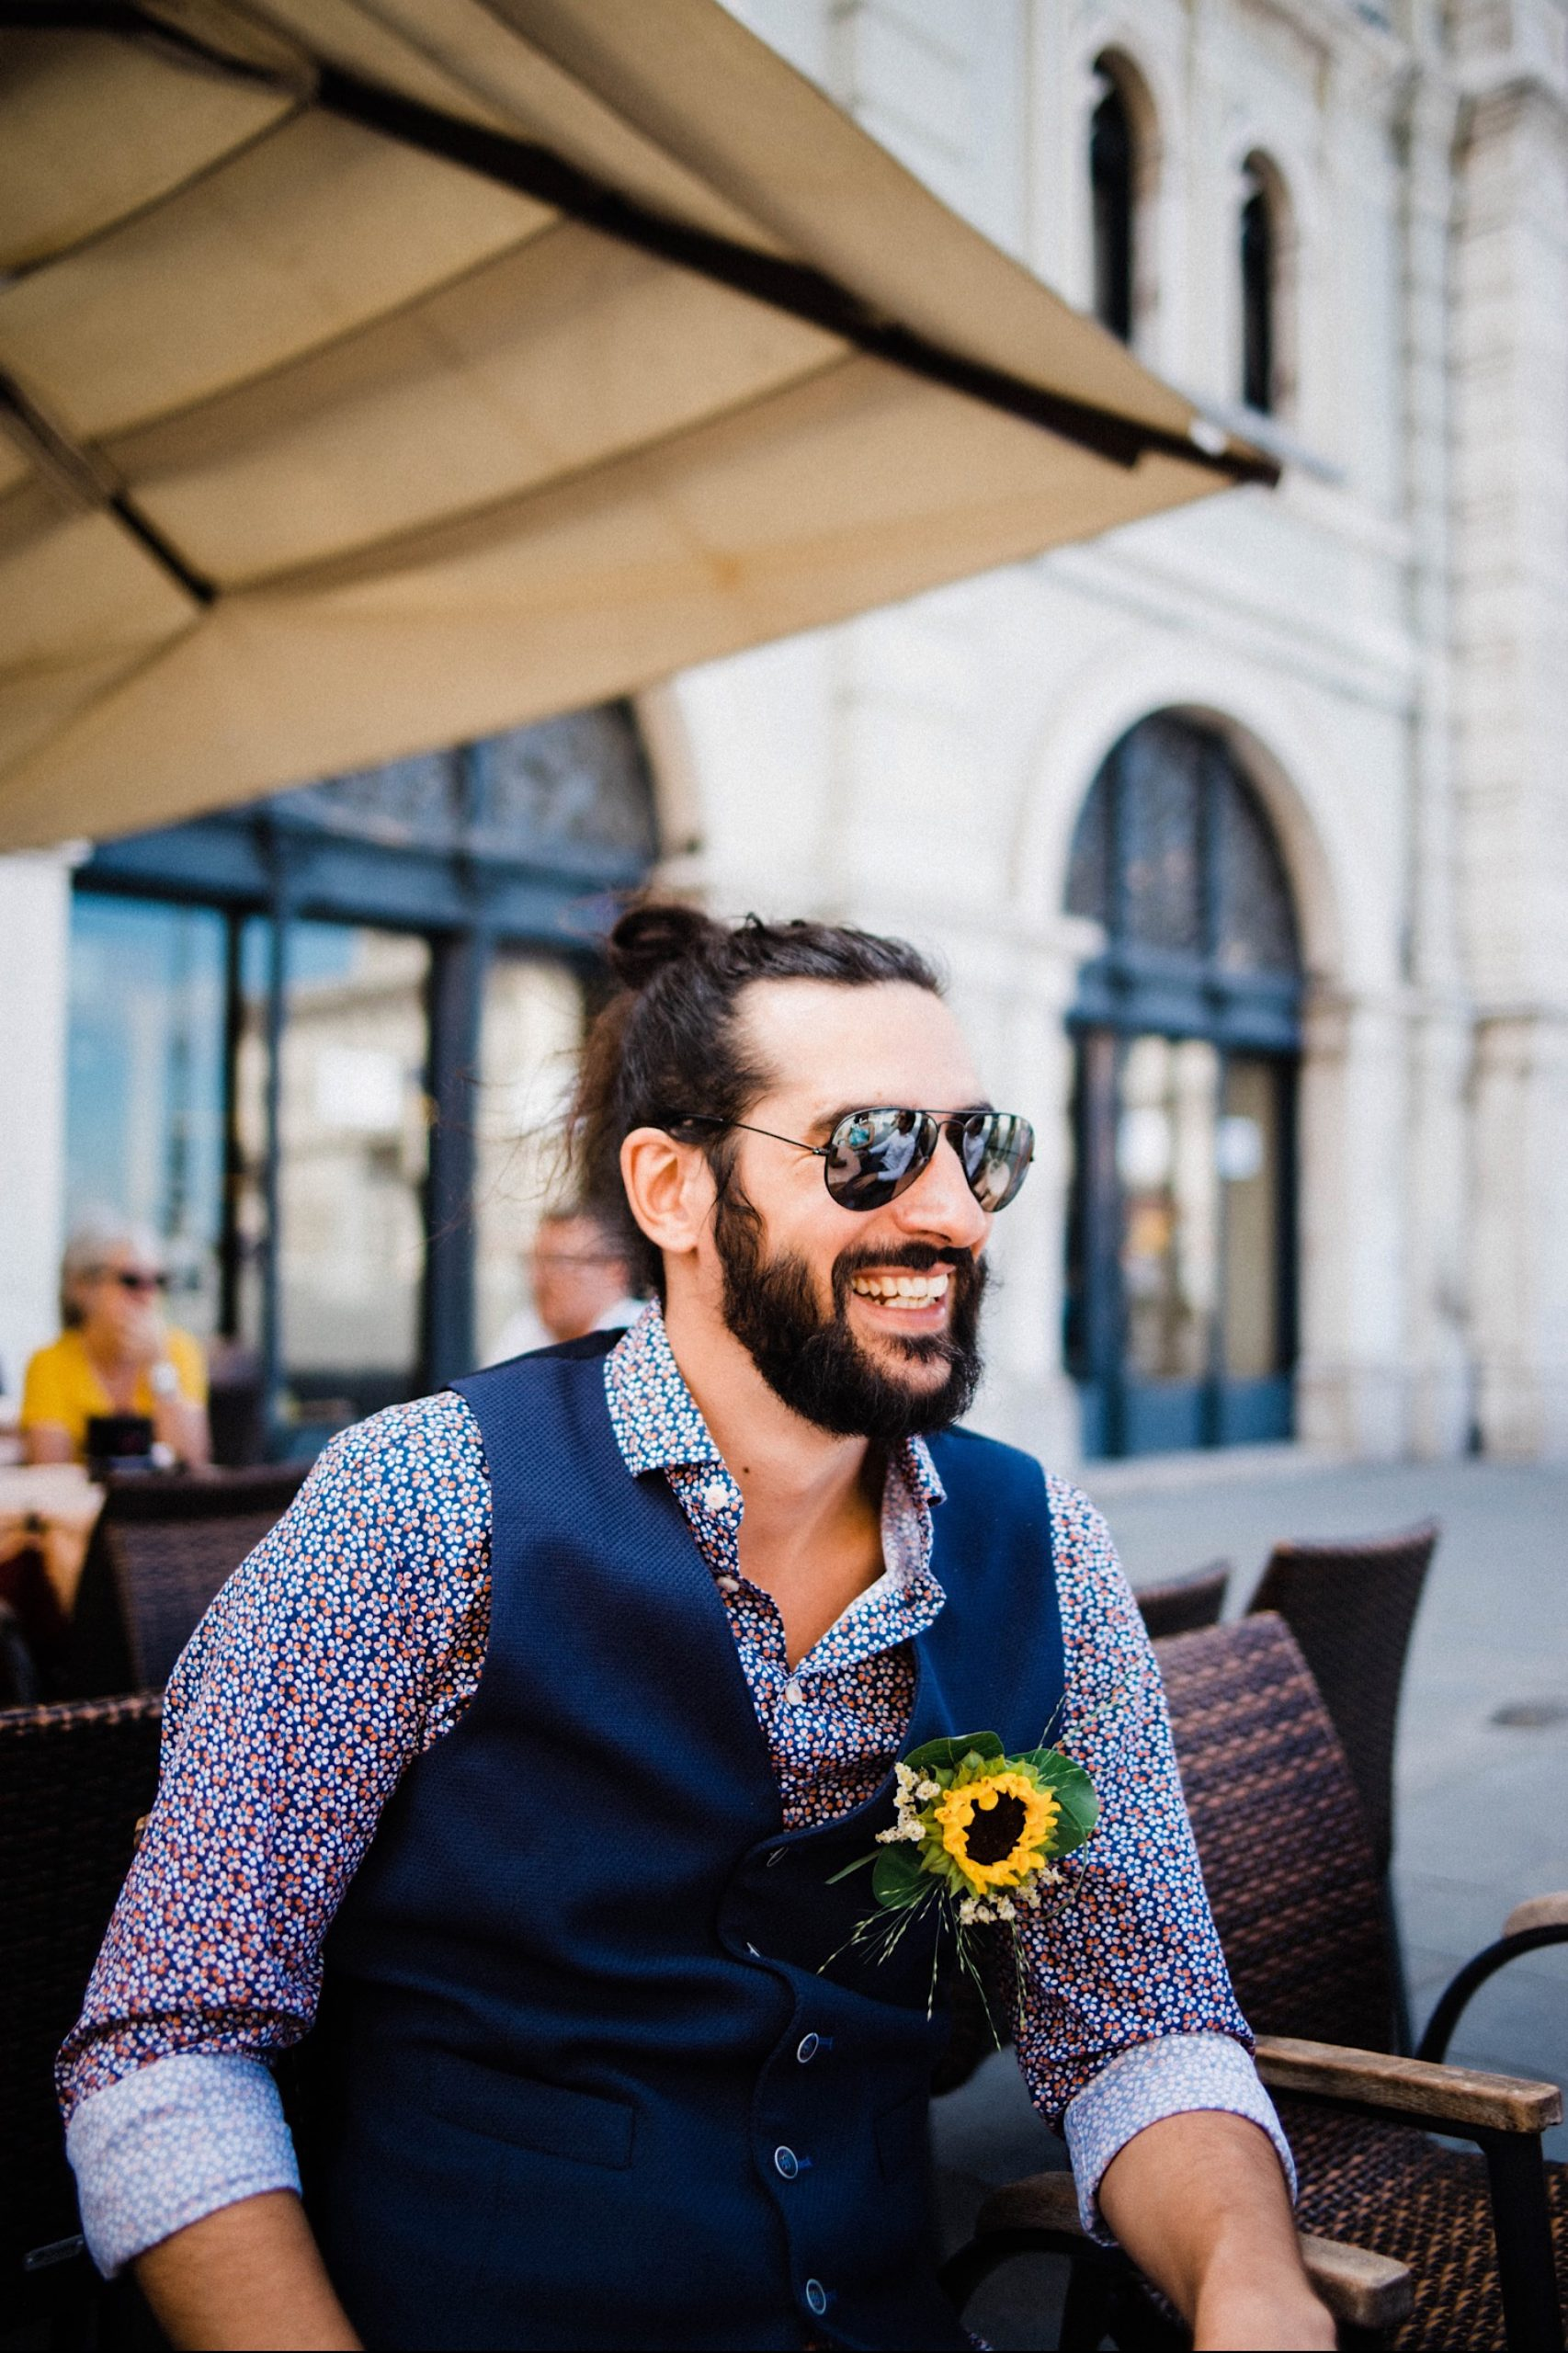 Portrait-oriented mid-shot of a groom smiling, sitting at a cafe in Piazza Unità in Trieste.